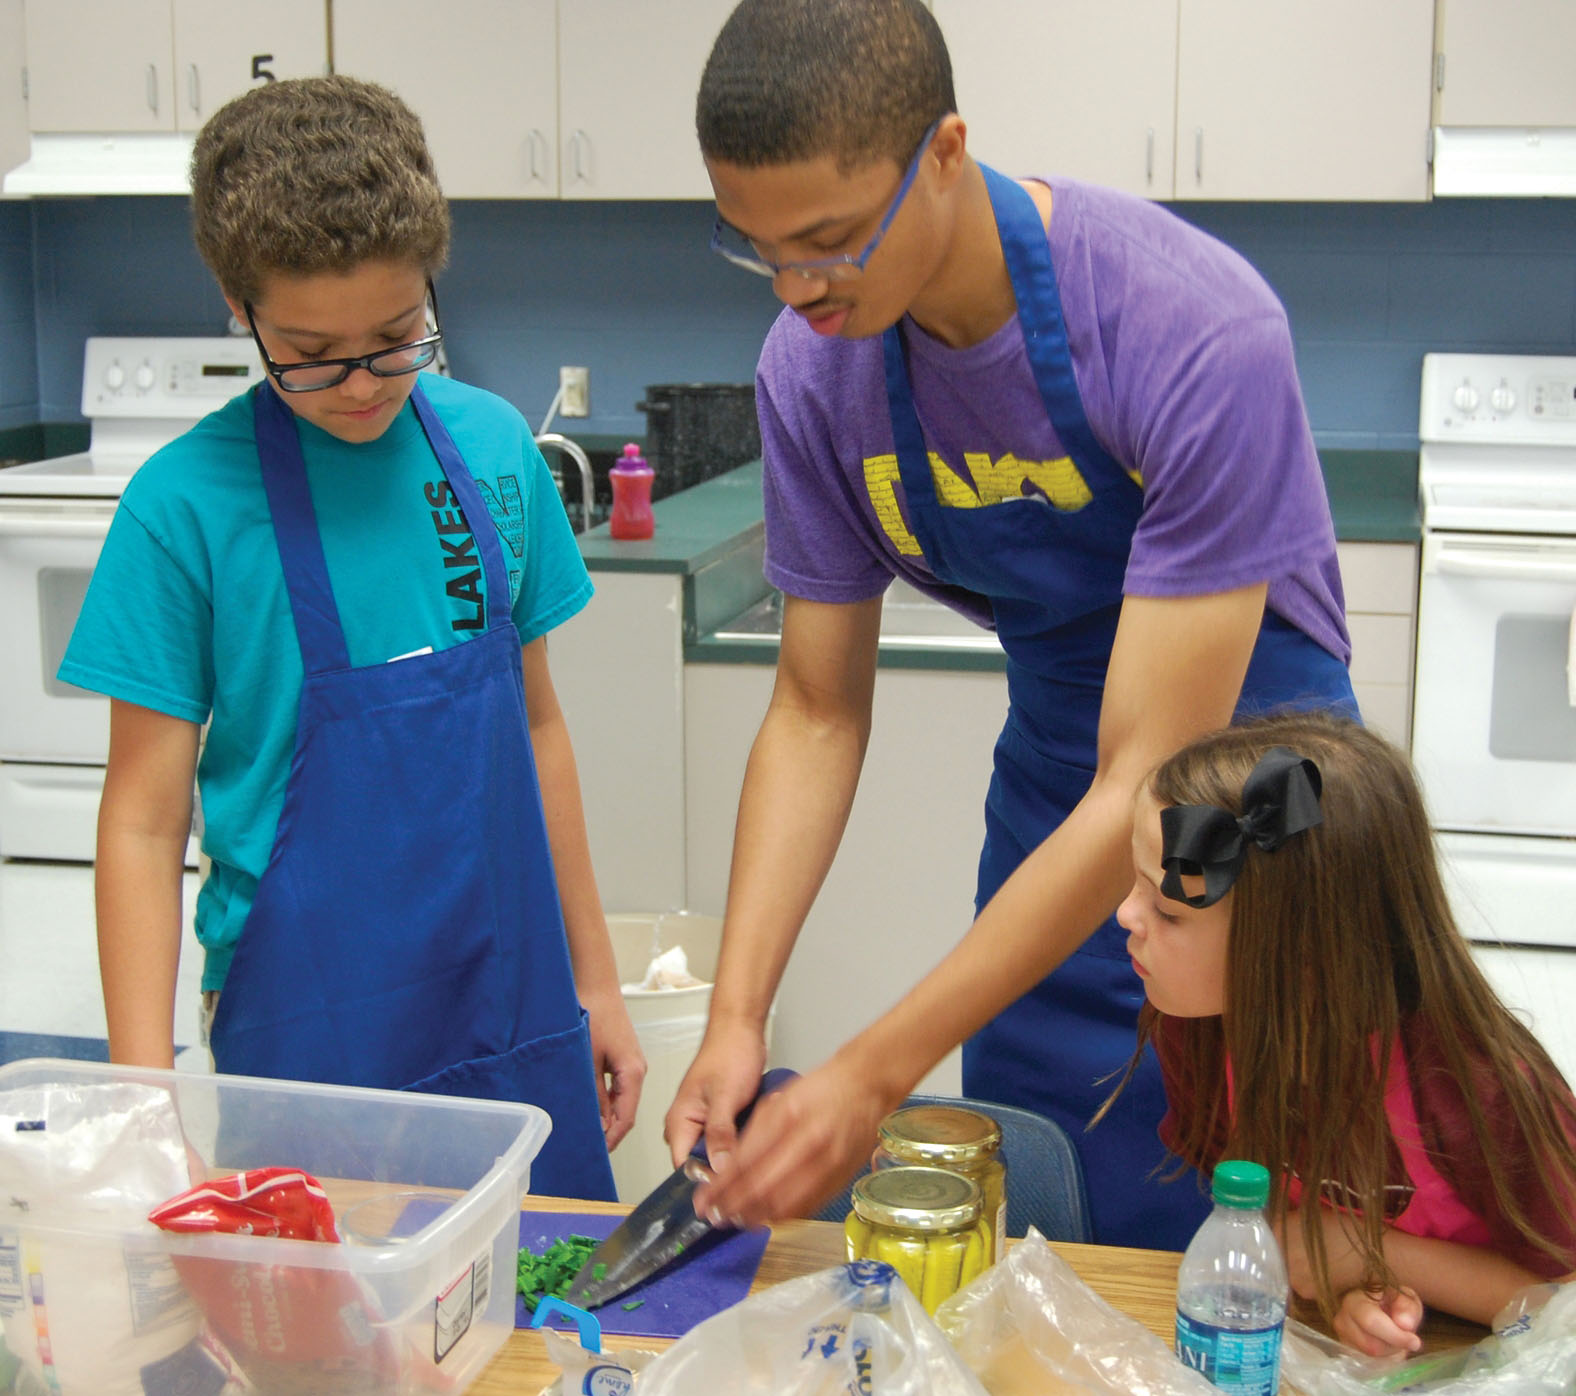 CCISD studentsColt Schultz, Ihsaan Muhammod and Avery Douglas, from left, team up to create a tasty culinary delight.